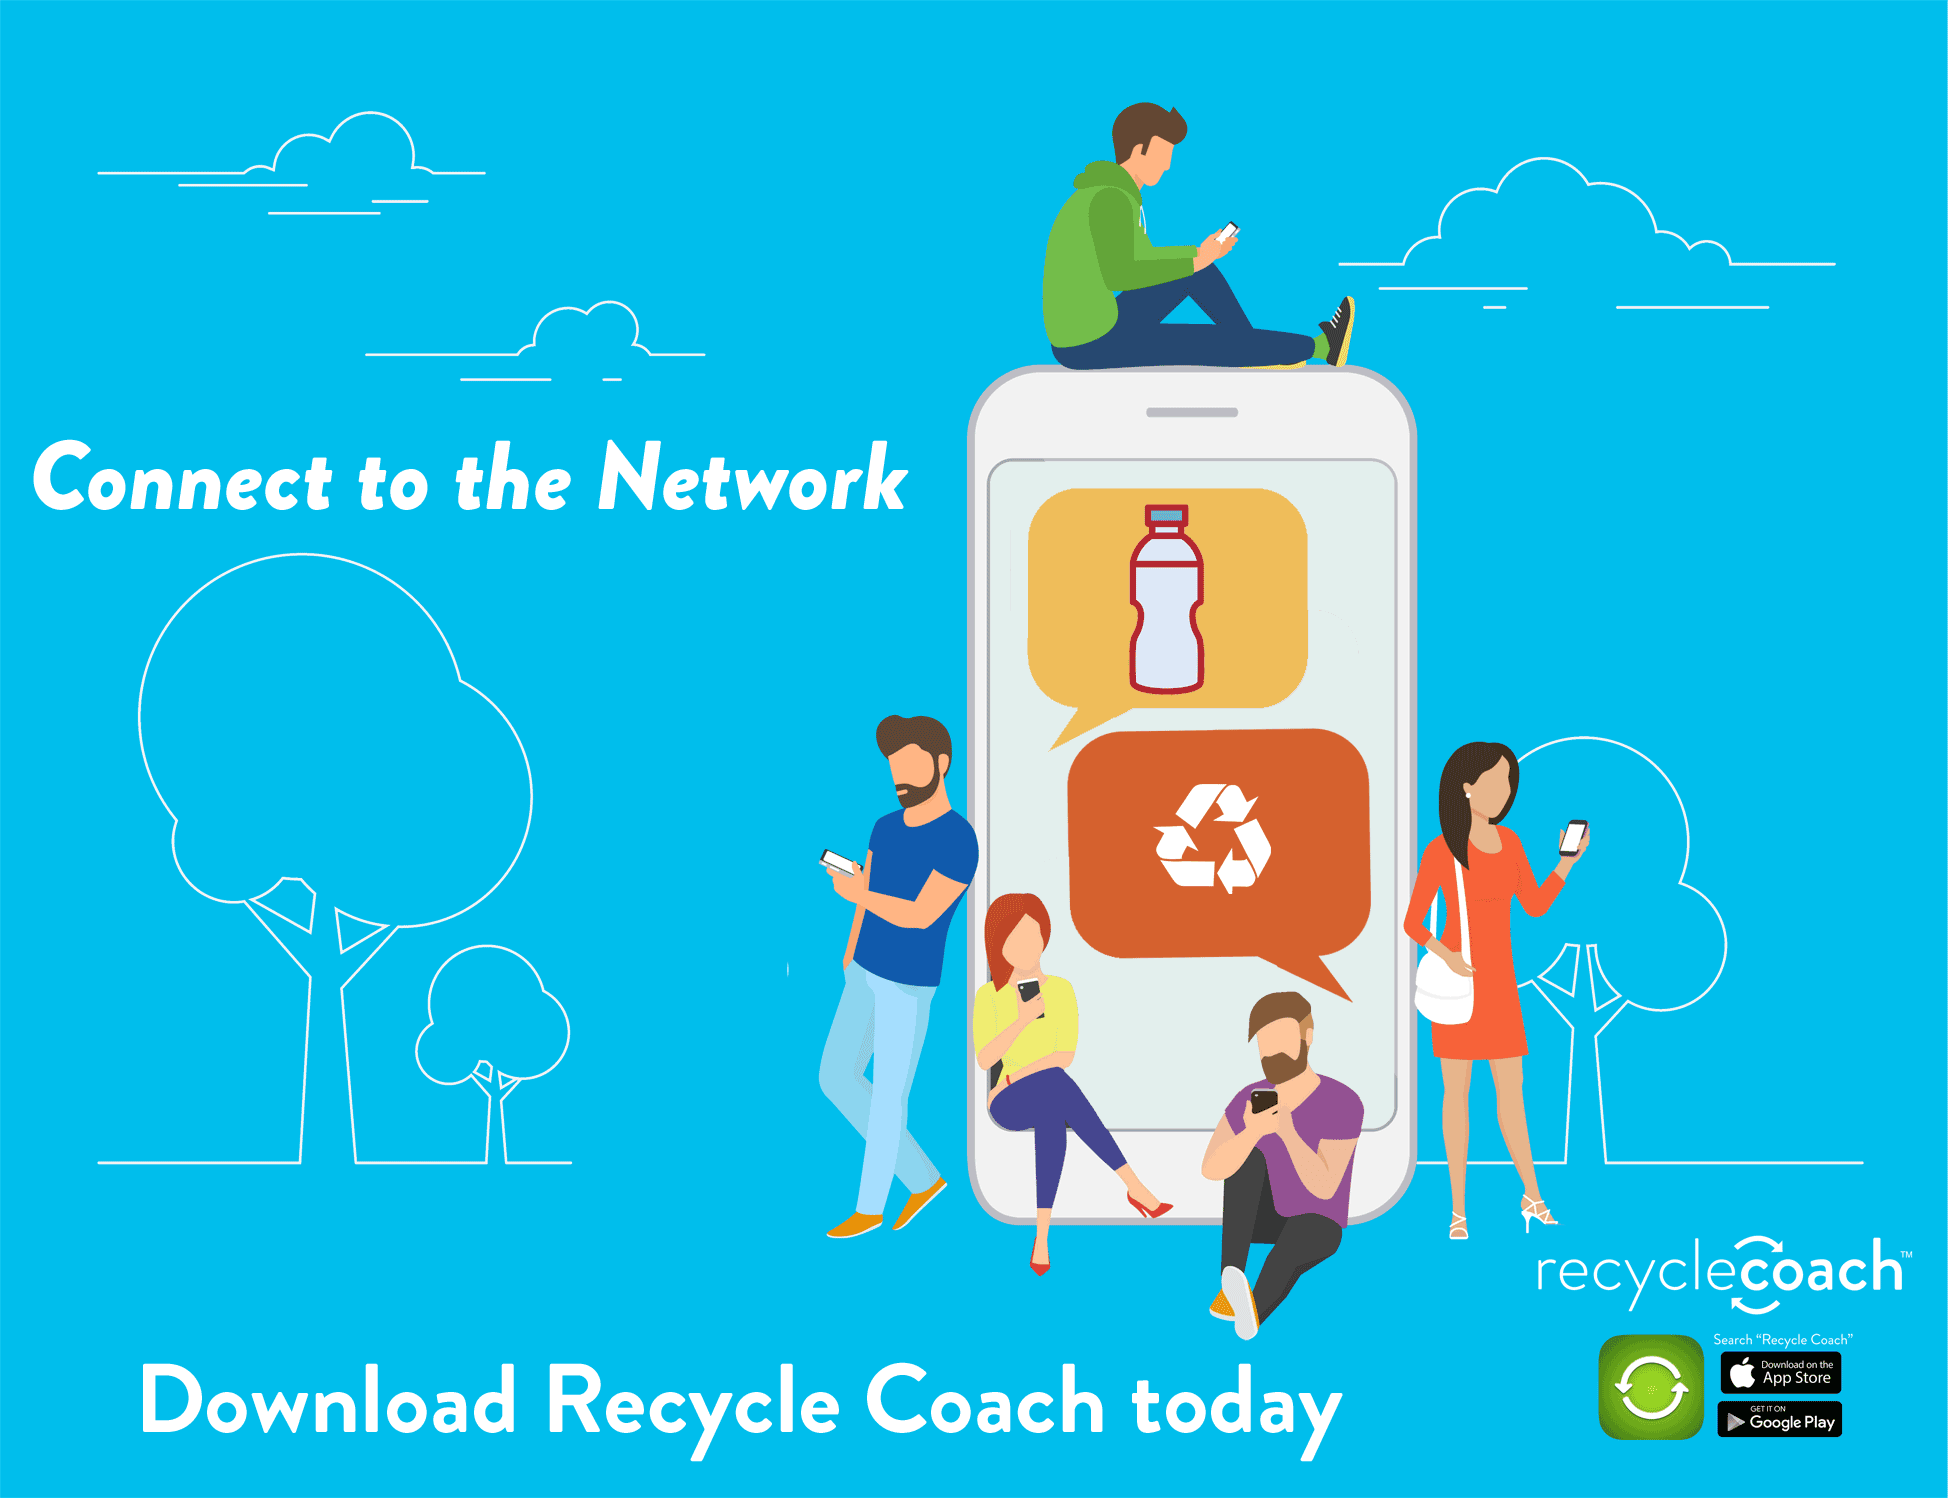 Recycle Coach image